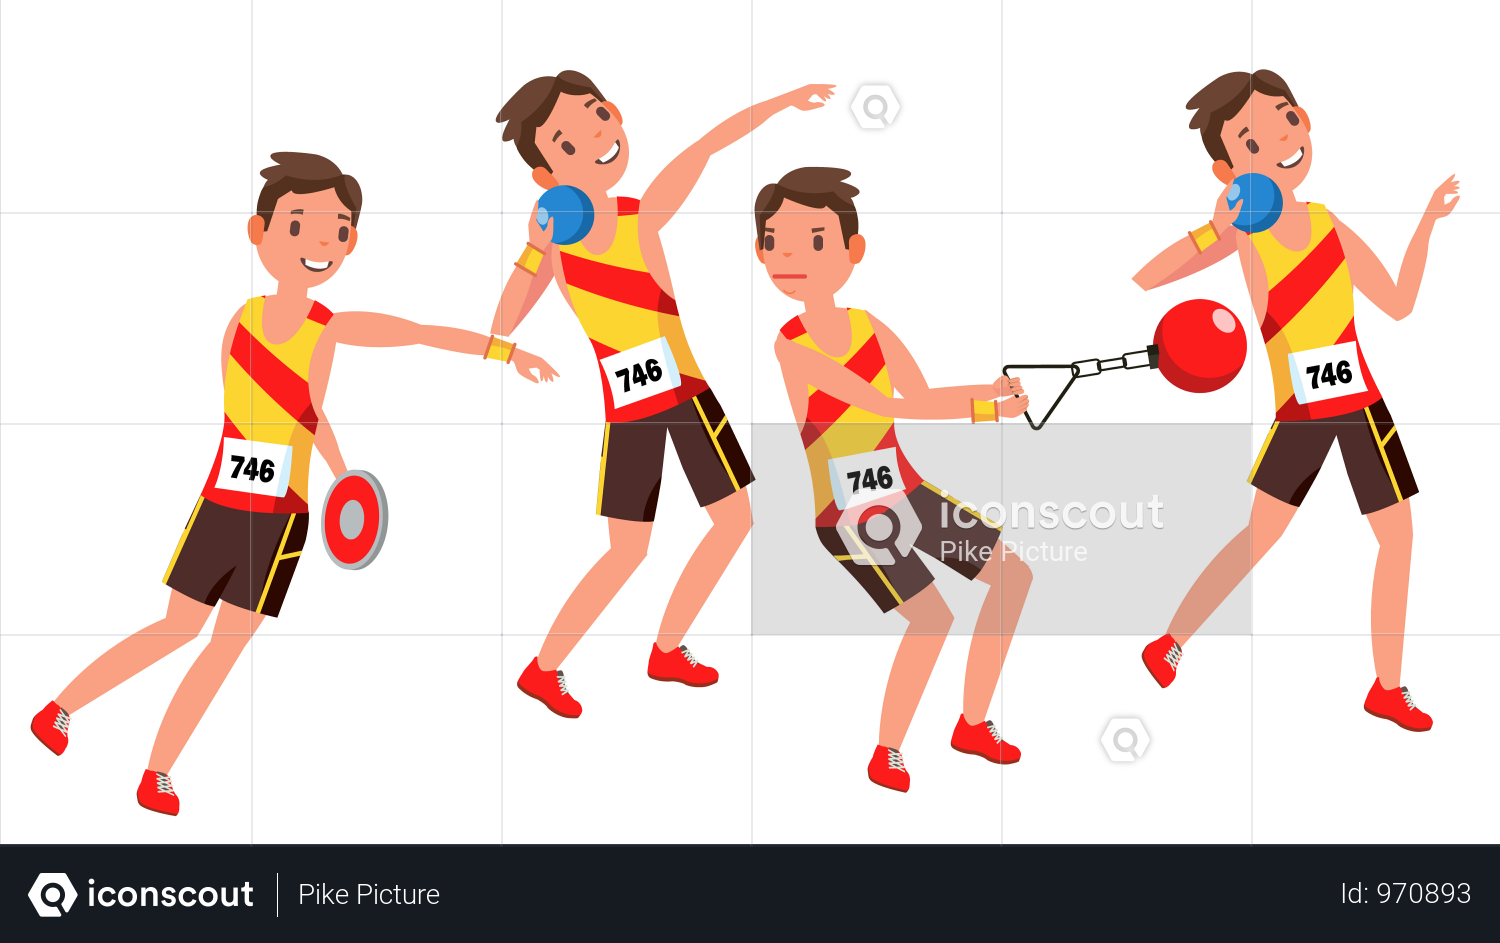 Premium Athletics Player Illustration Download In Png Vector Format Professional Tennis Players Athlete Handball Players